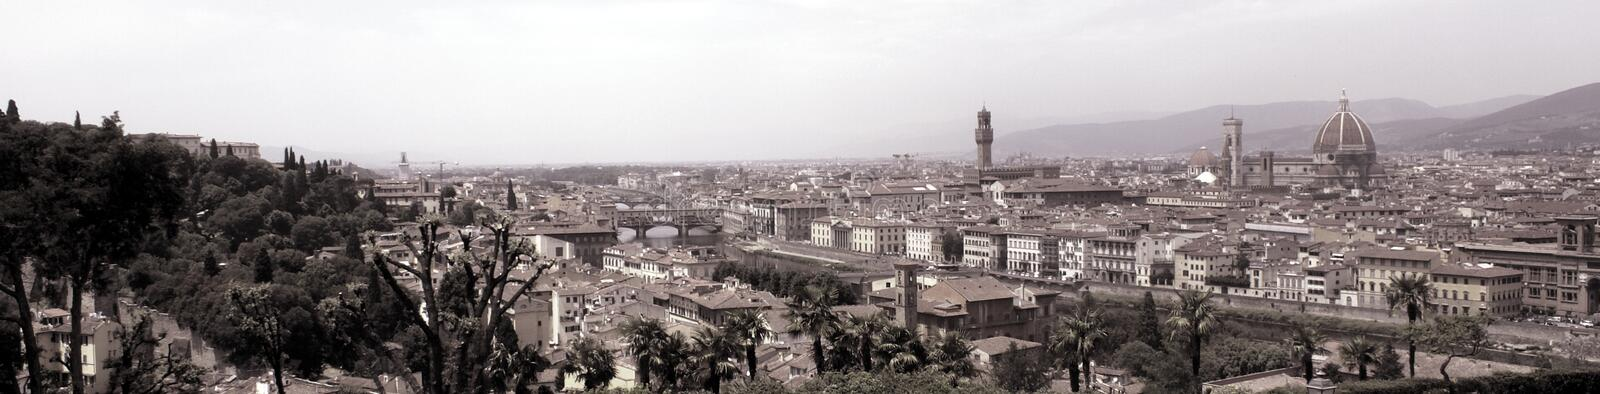 Firenze panorama view (florence) royalty free stock photo